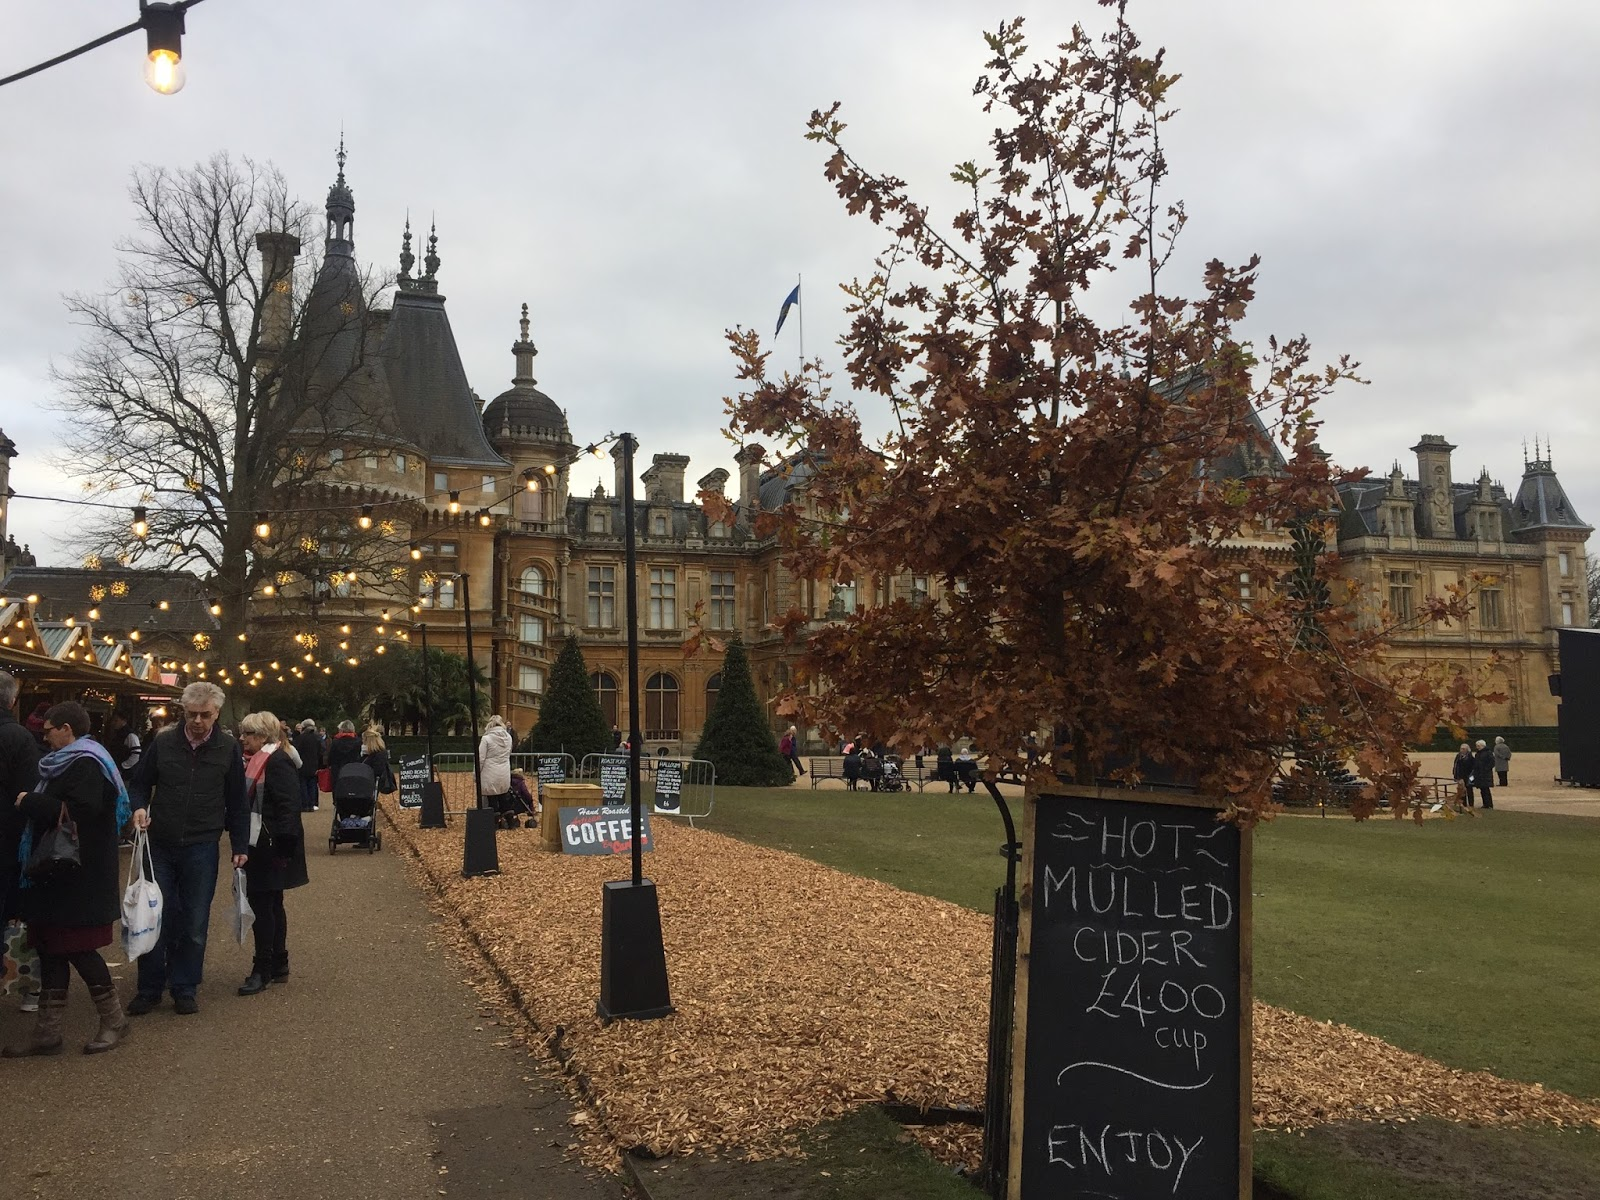 Formidable Joy | UK Fashion, Beauty & Lifestyle Blog | Lifestyle | A seasonal visit to Waddesdon Manor | Waddesdon Manor | Christmas Market